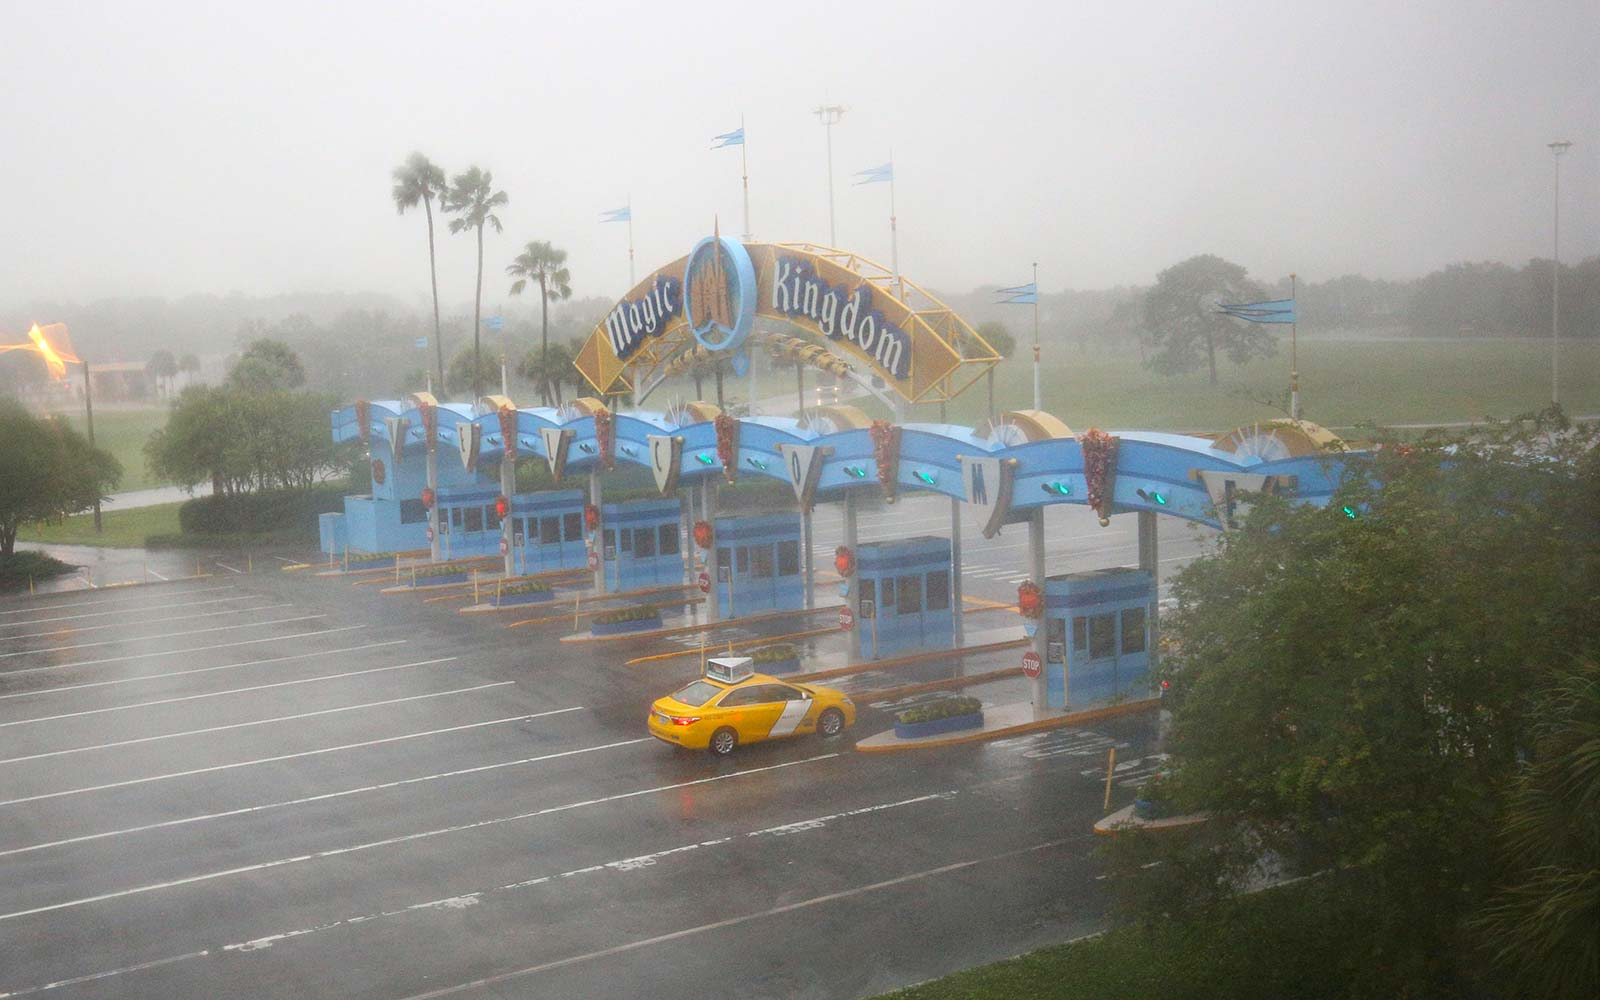 A lone taxi heads toward the Walt Disney World Resort area in Orlando Florida before the landfall of Hurricane Matthew